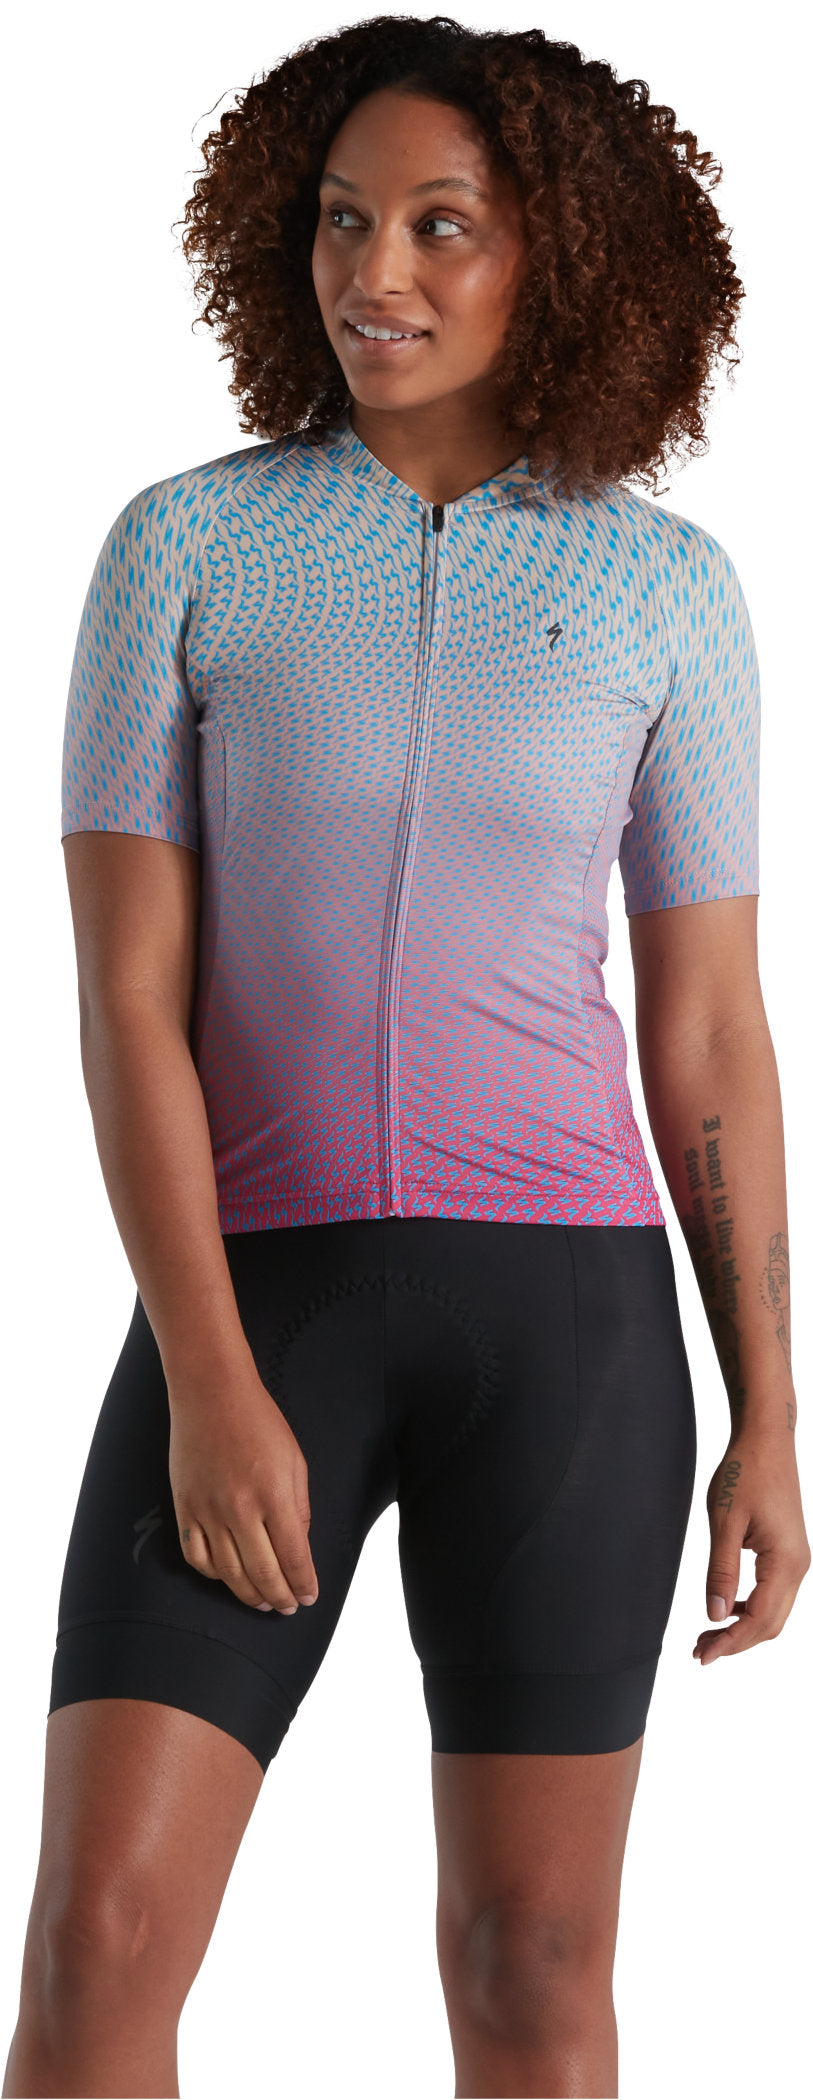 Women's SL Bicycledelics Jersey